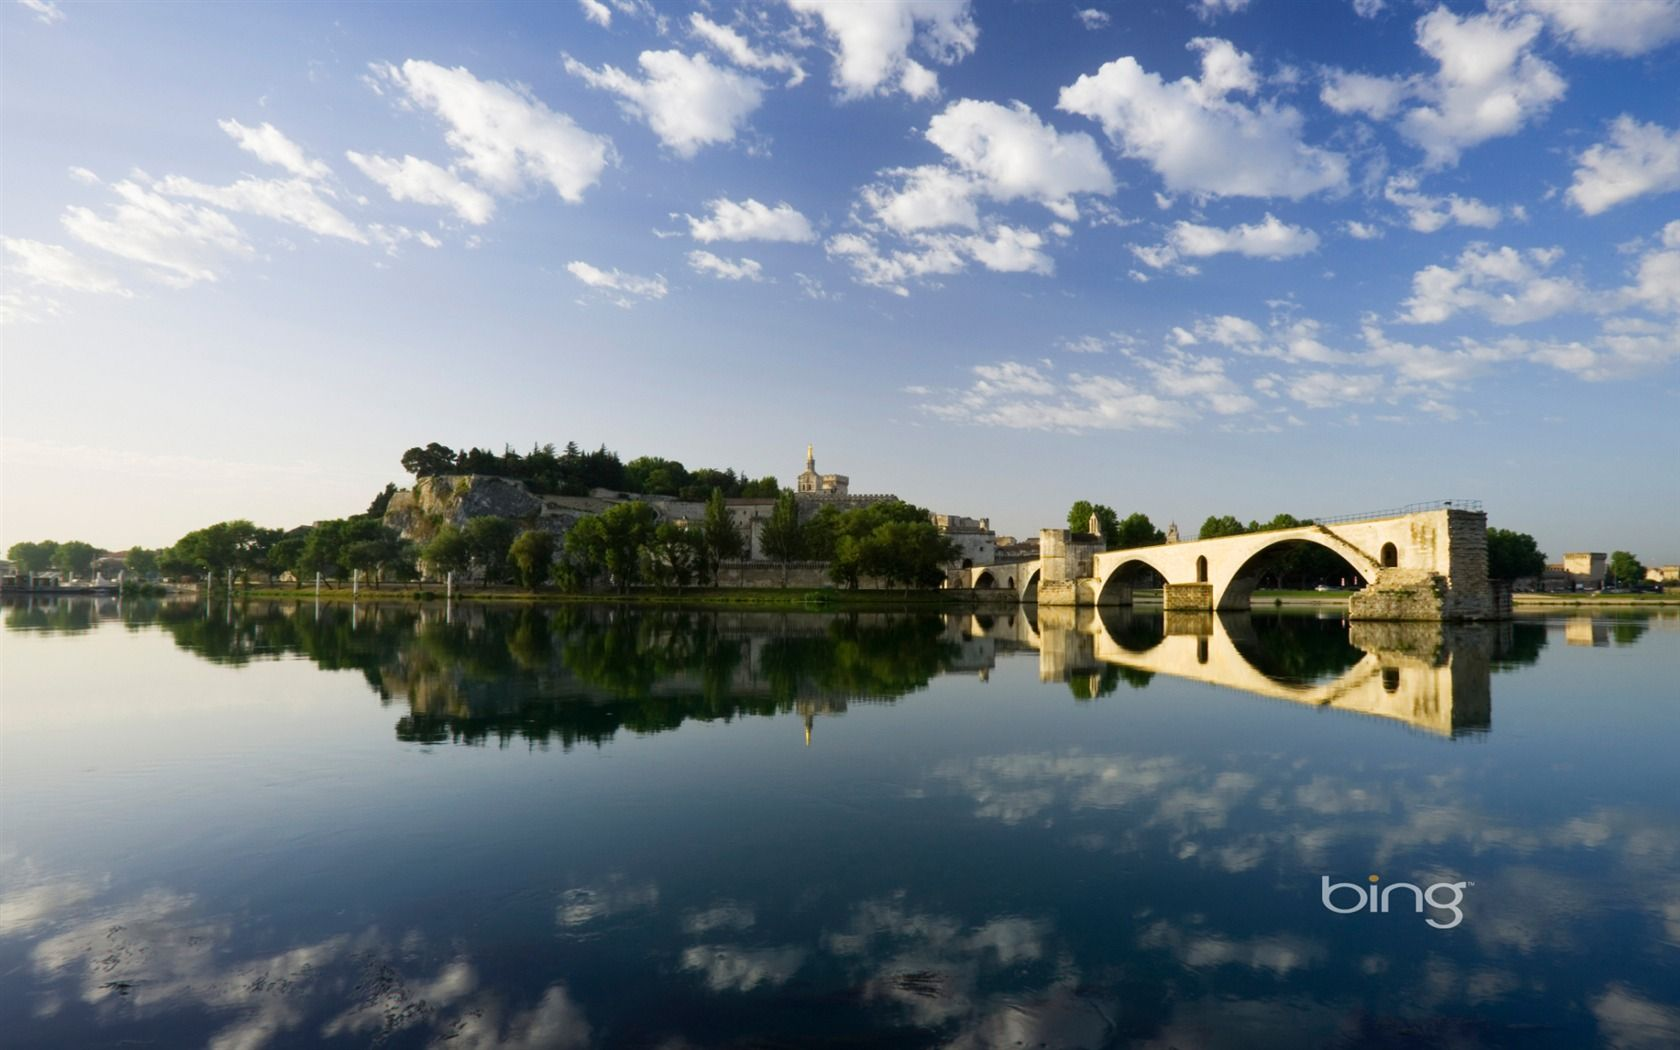 Bing Wallpapers as Desktop Background on the Rhone France 1680x1050